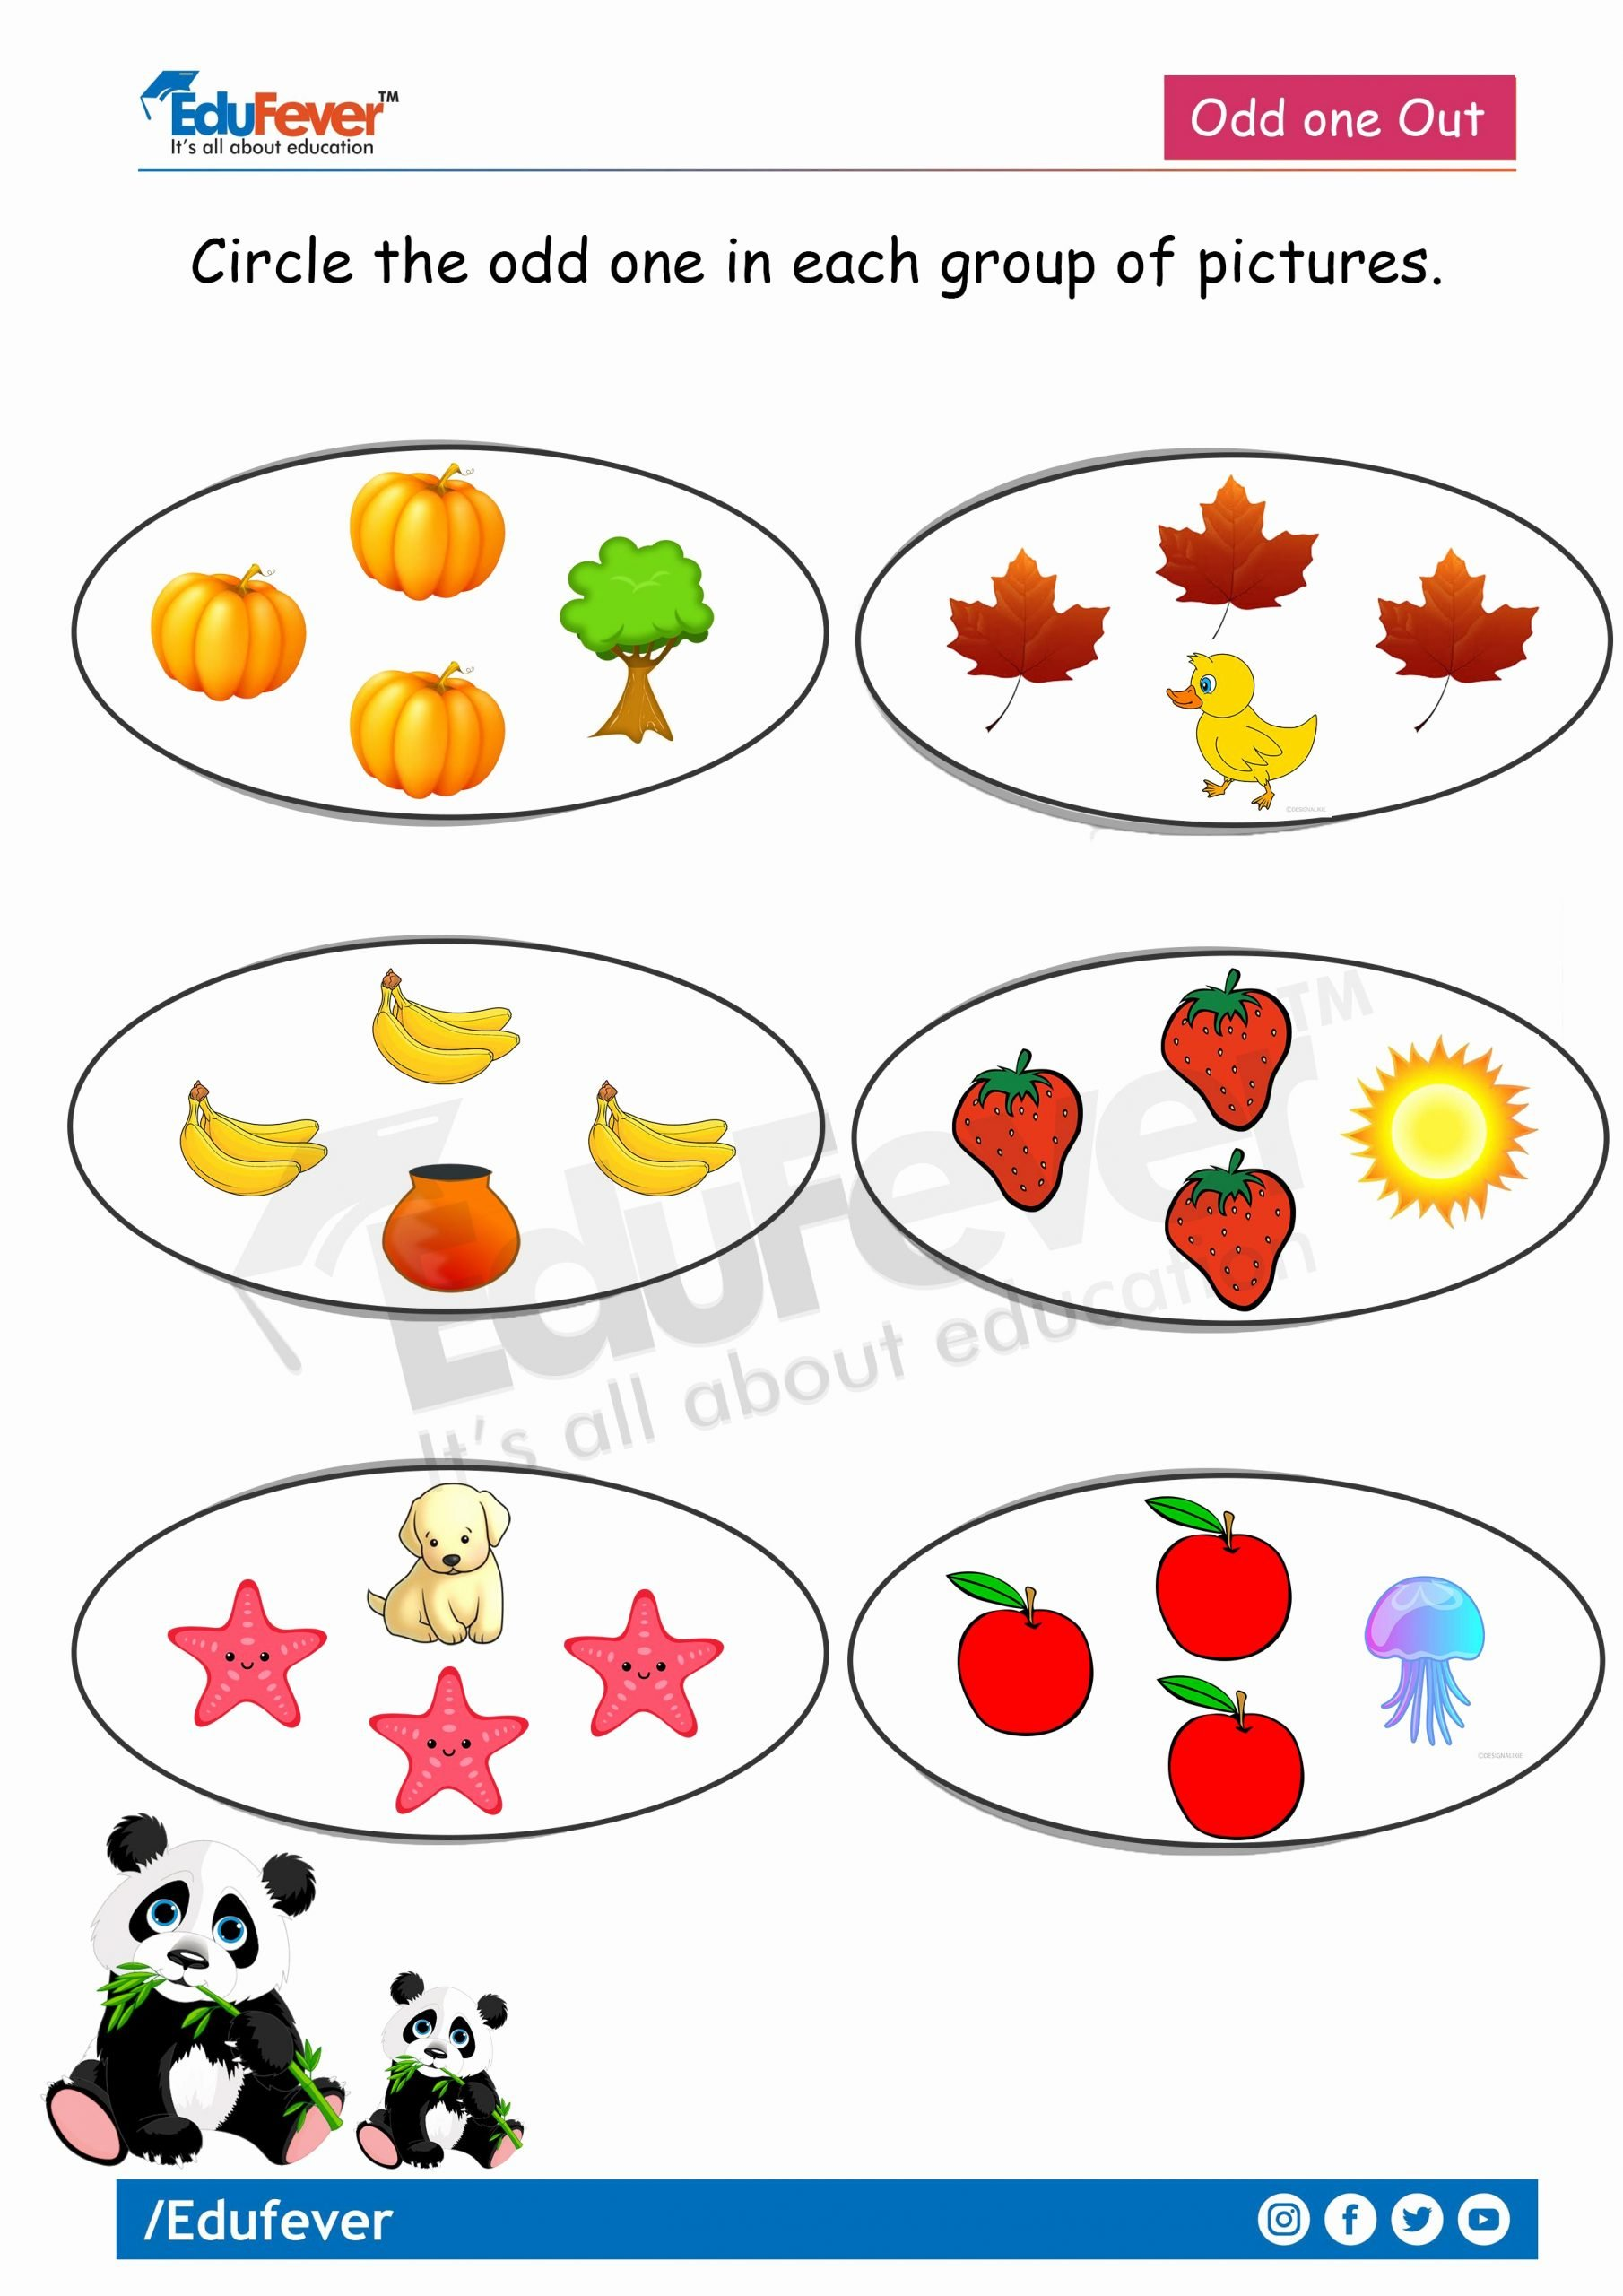 Odd One Out Worksheets for Preschoolers Lovely Circle the Odd One Out Lkg Math Worksheet In 2020